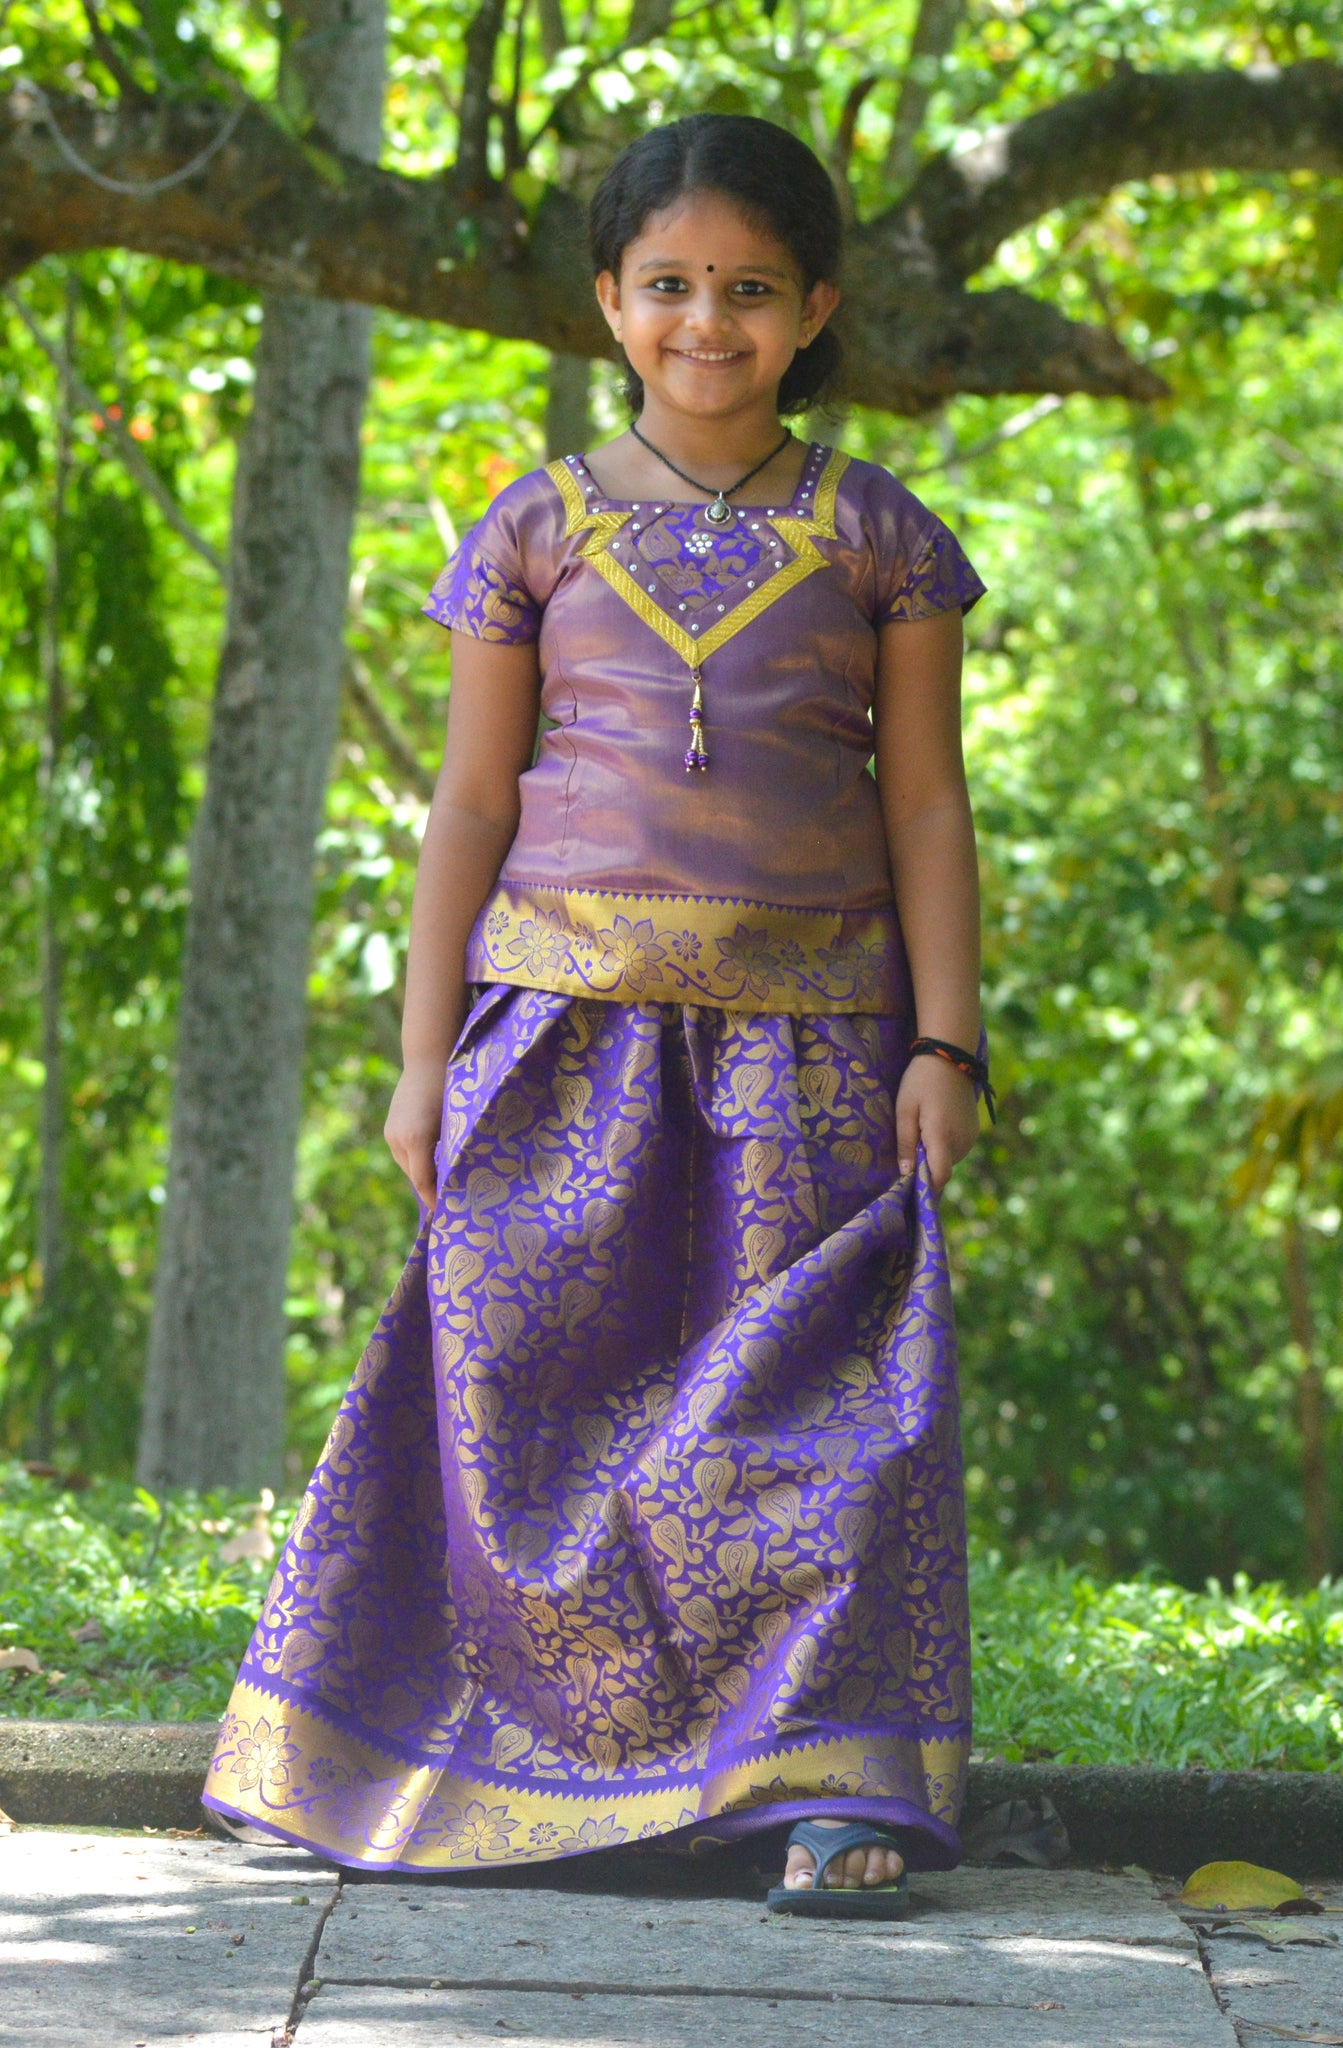 Southloom Violet Pattupavada and Blouse (Traditional Ethnic Skirt and Blouse for Girls)